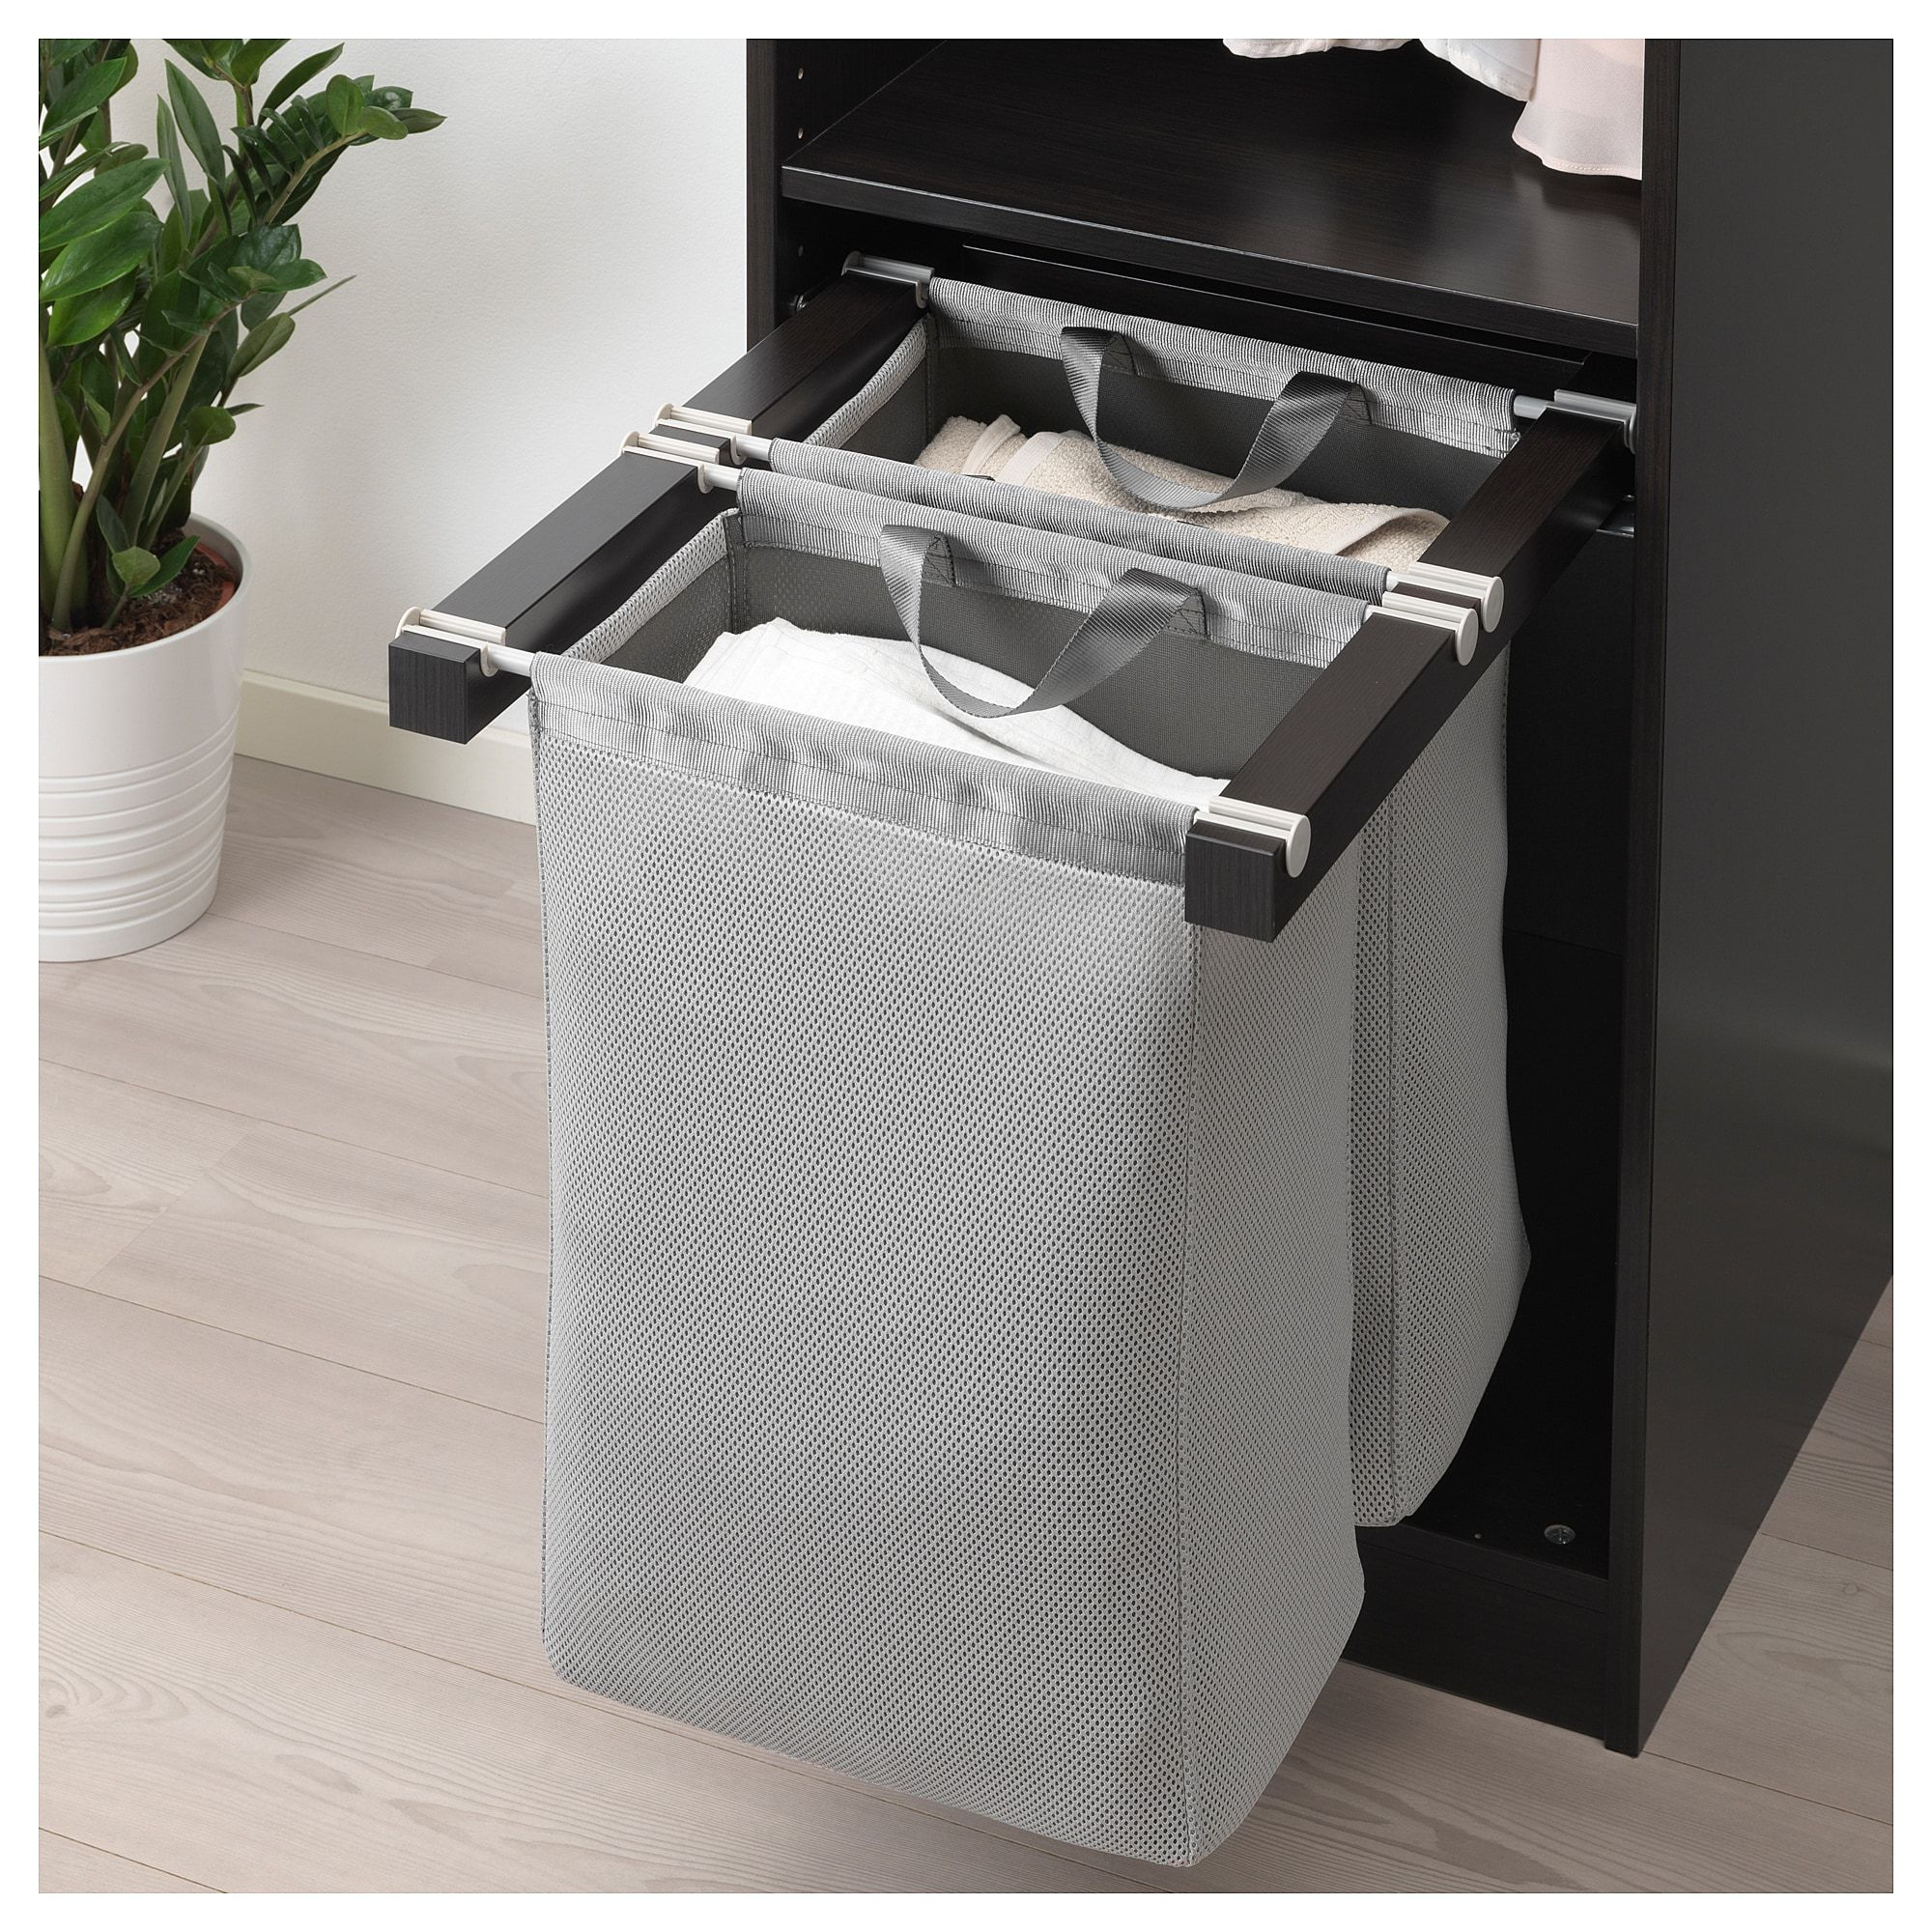 Komplement Black Brown Pull Out Storage Bag 50x58x48 Cm Ikea Laundry Room Storage Ikea Komplement Room Storage Diy